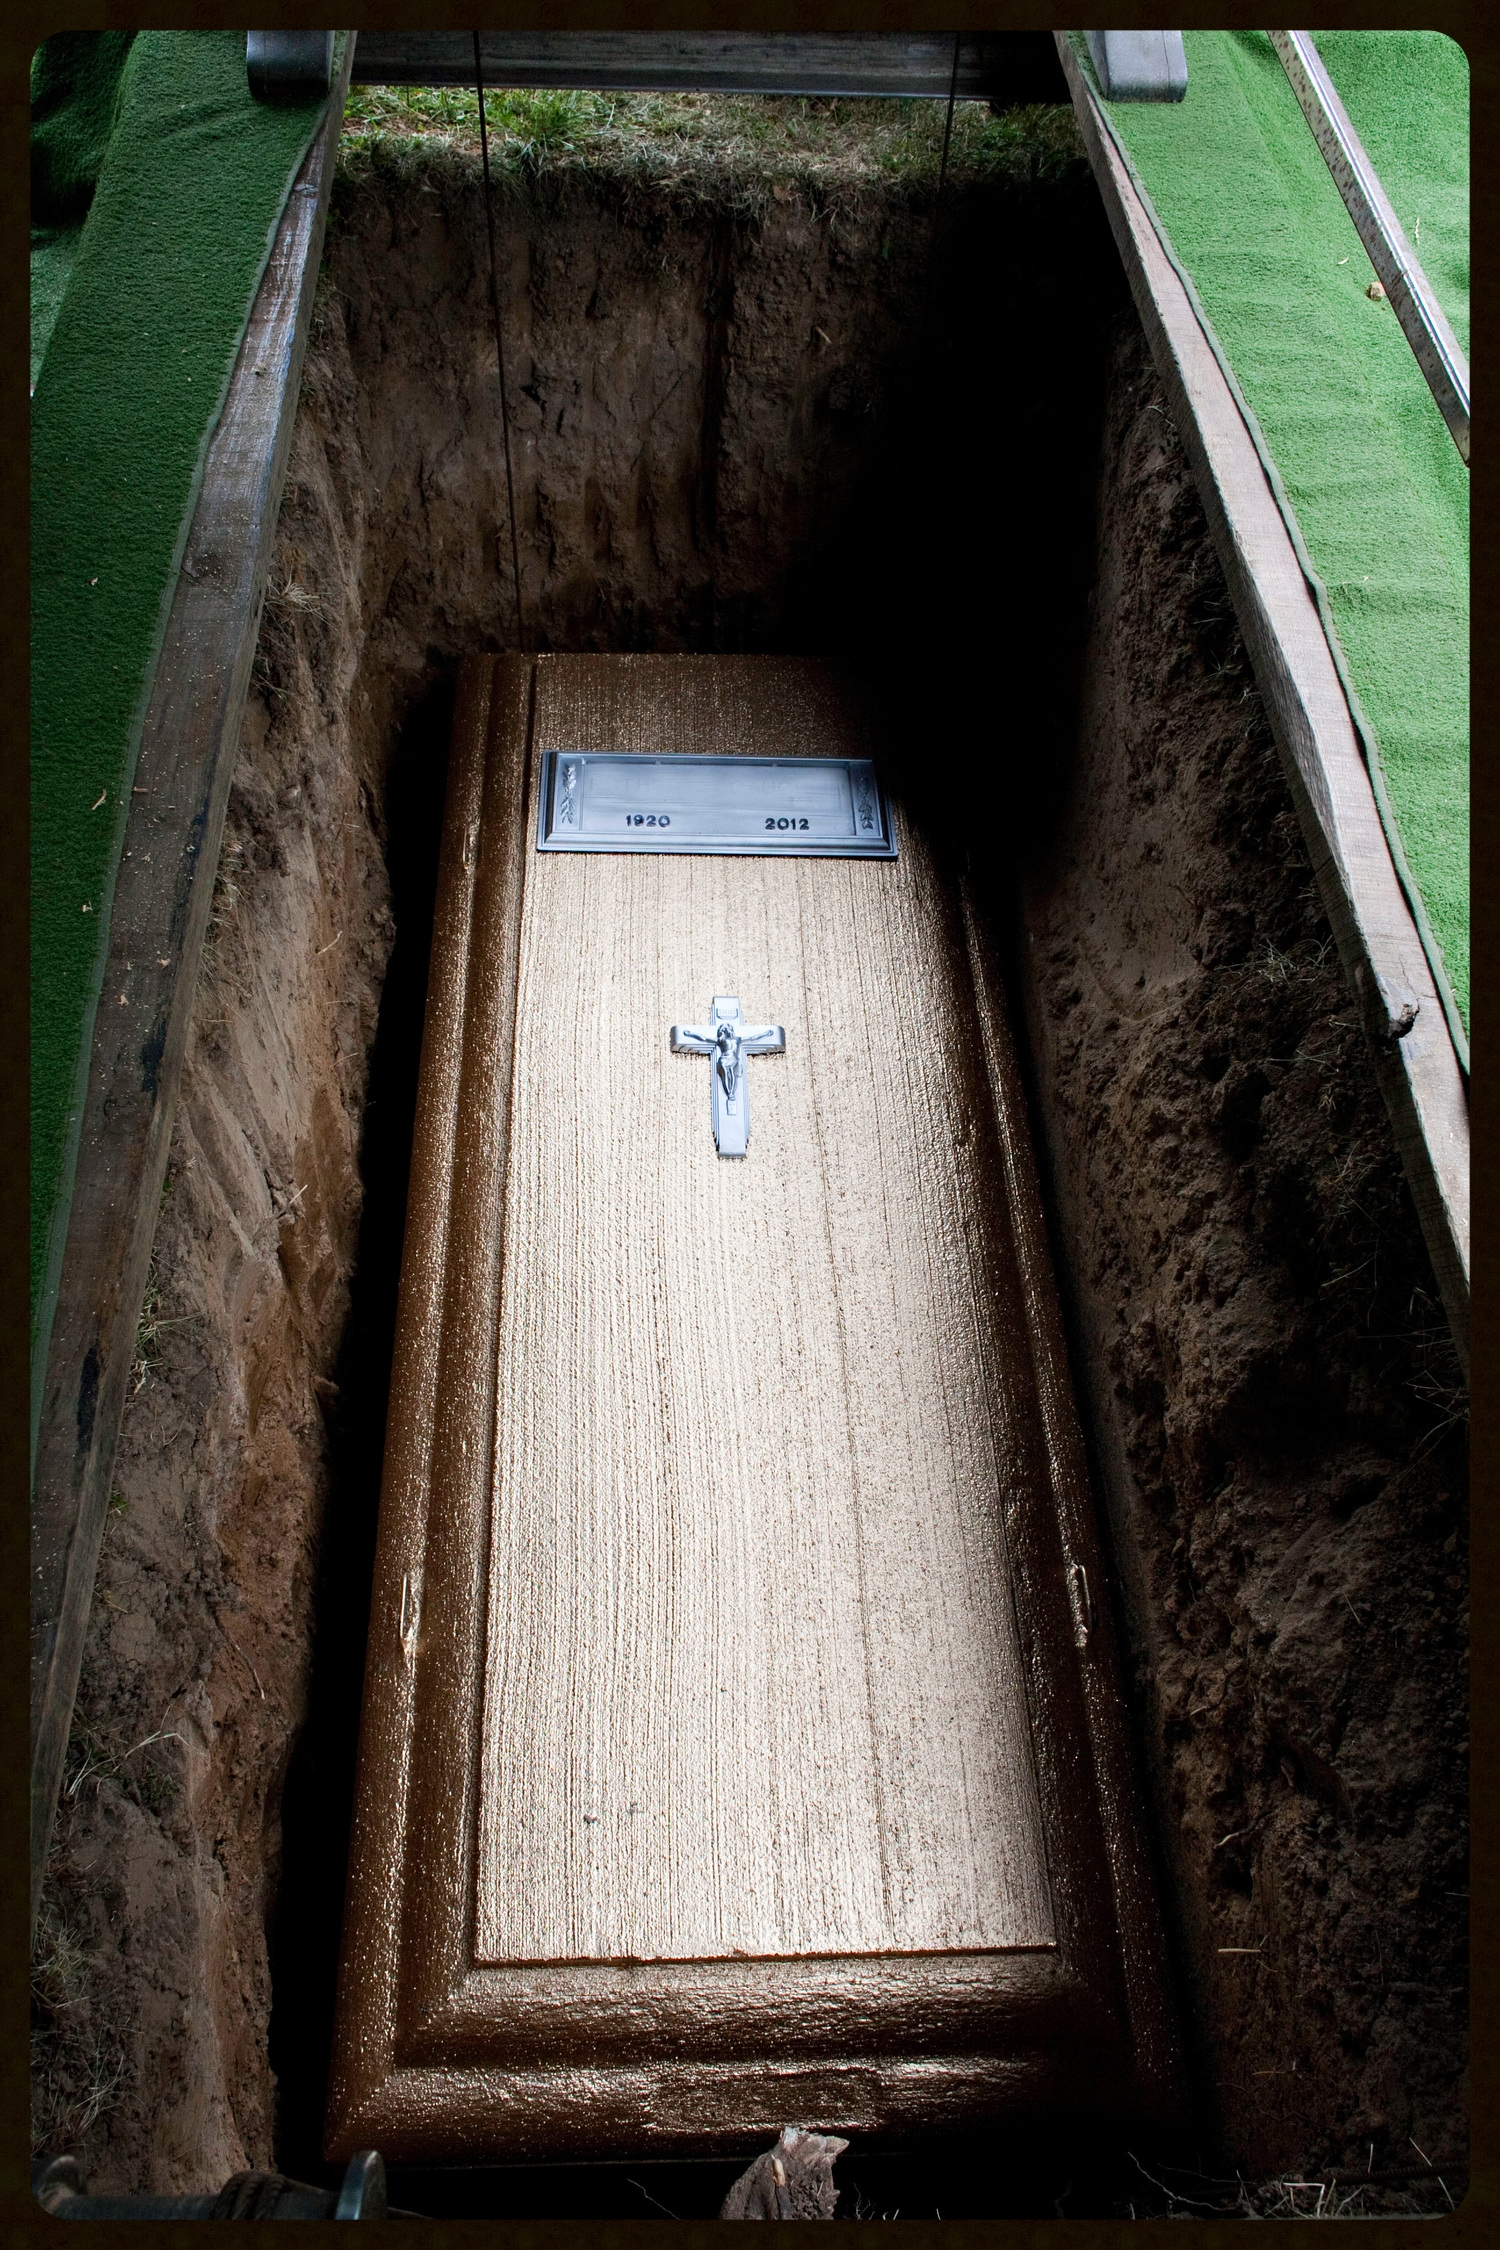 Concrete burial vaults are not required by law.